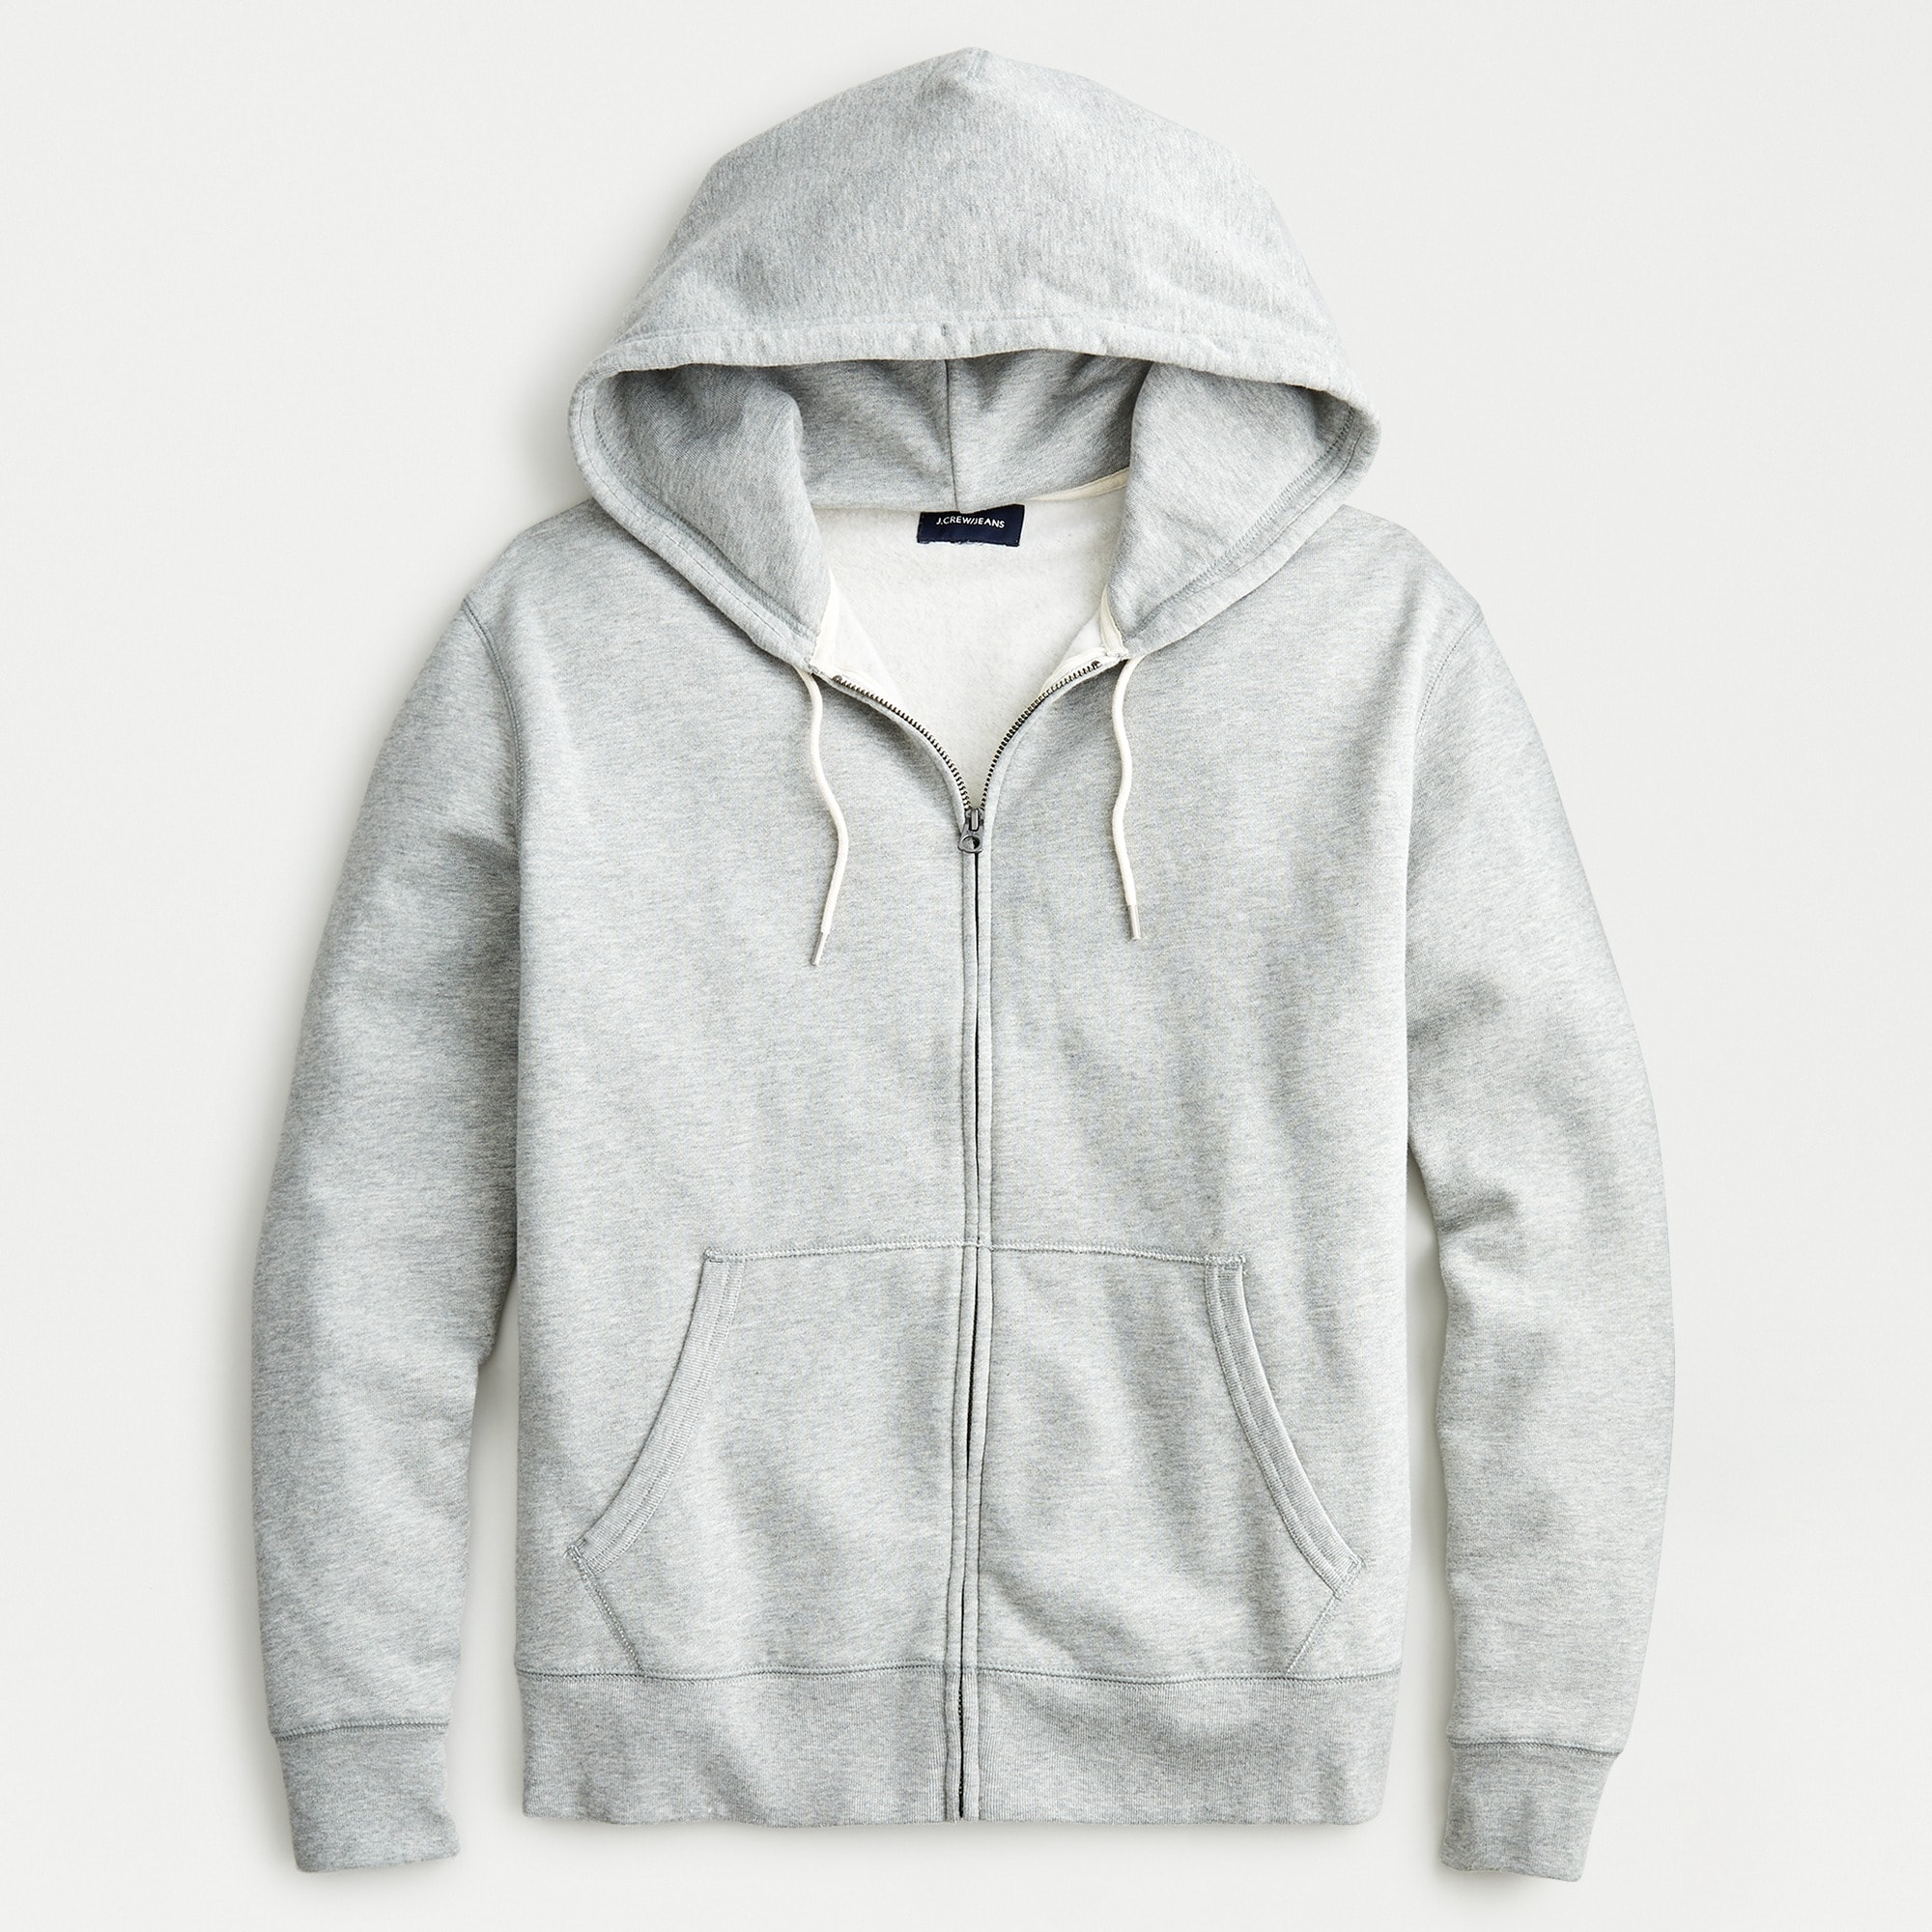 Tall brushed fleece full-zip sweatshirt